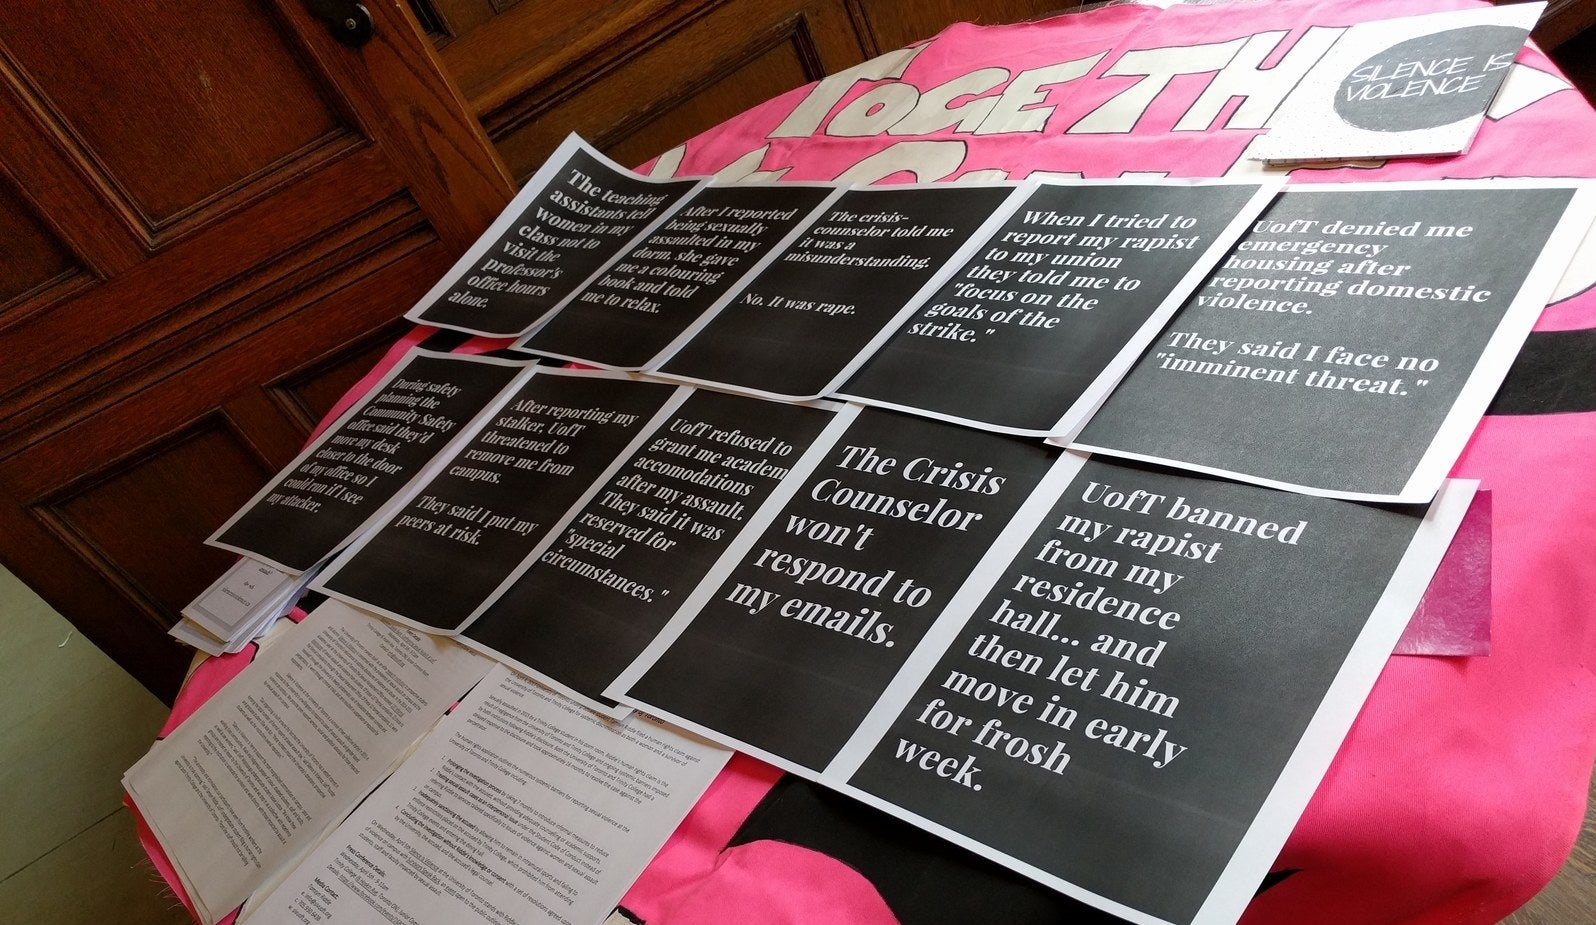 Sexual assault awareness posters that were put up around the U of T campus by the group Silence Is Violence.